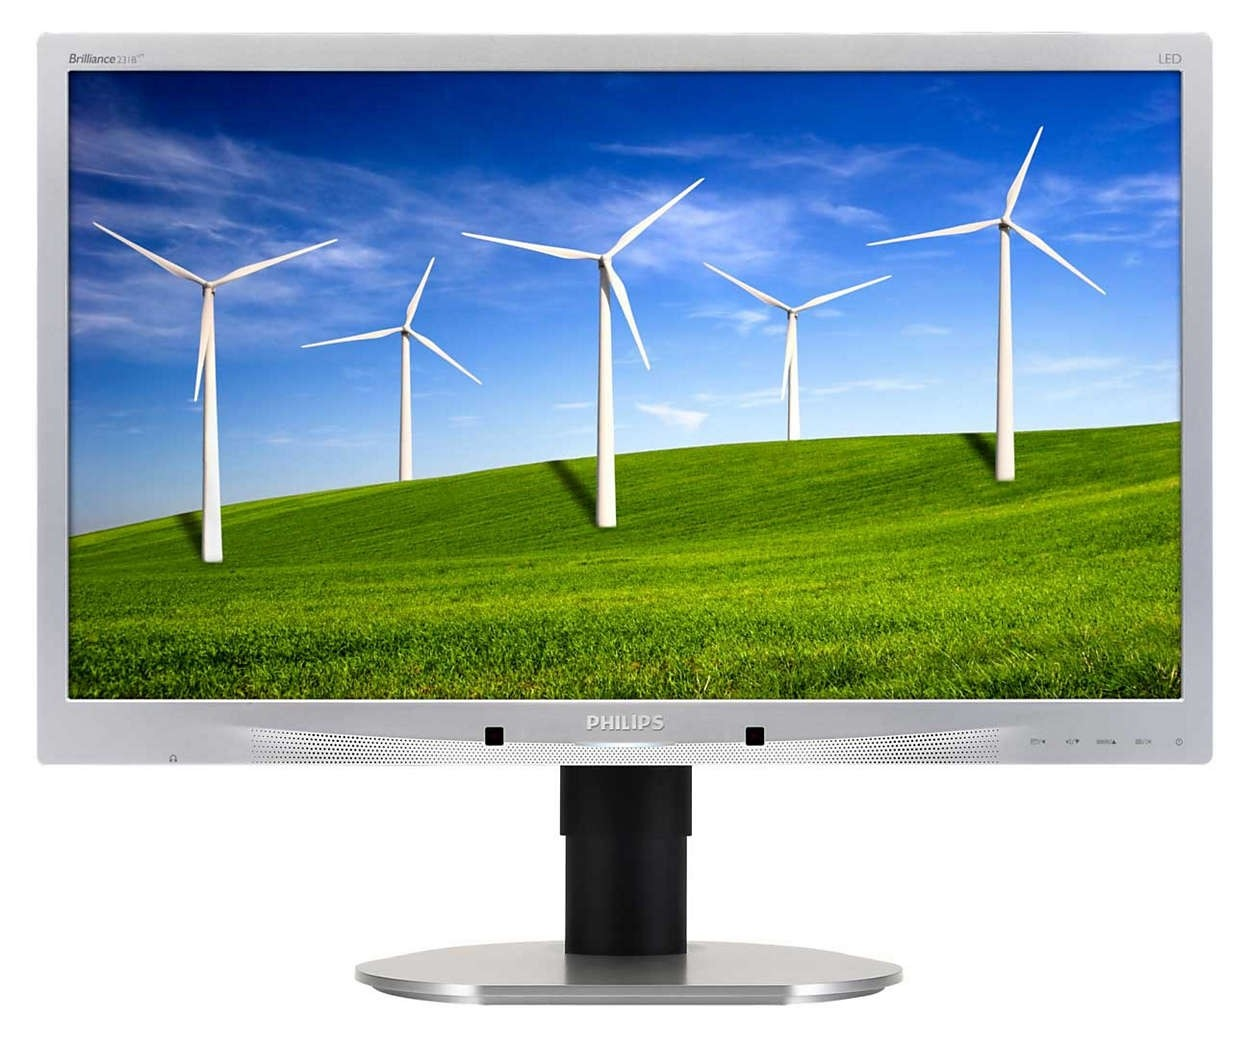 Philips Brilliance 231B - 1920x1080 (Full HD) - 23 inch